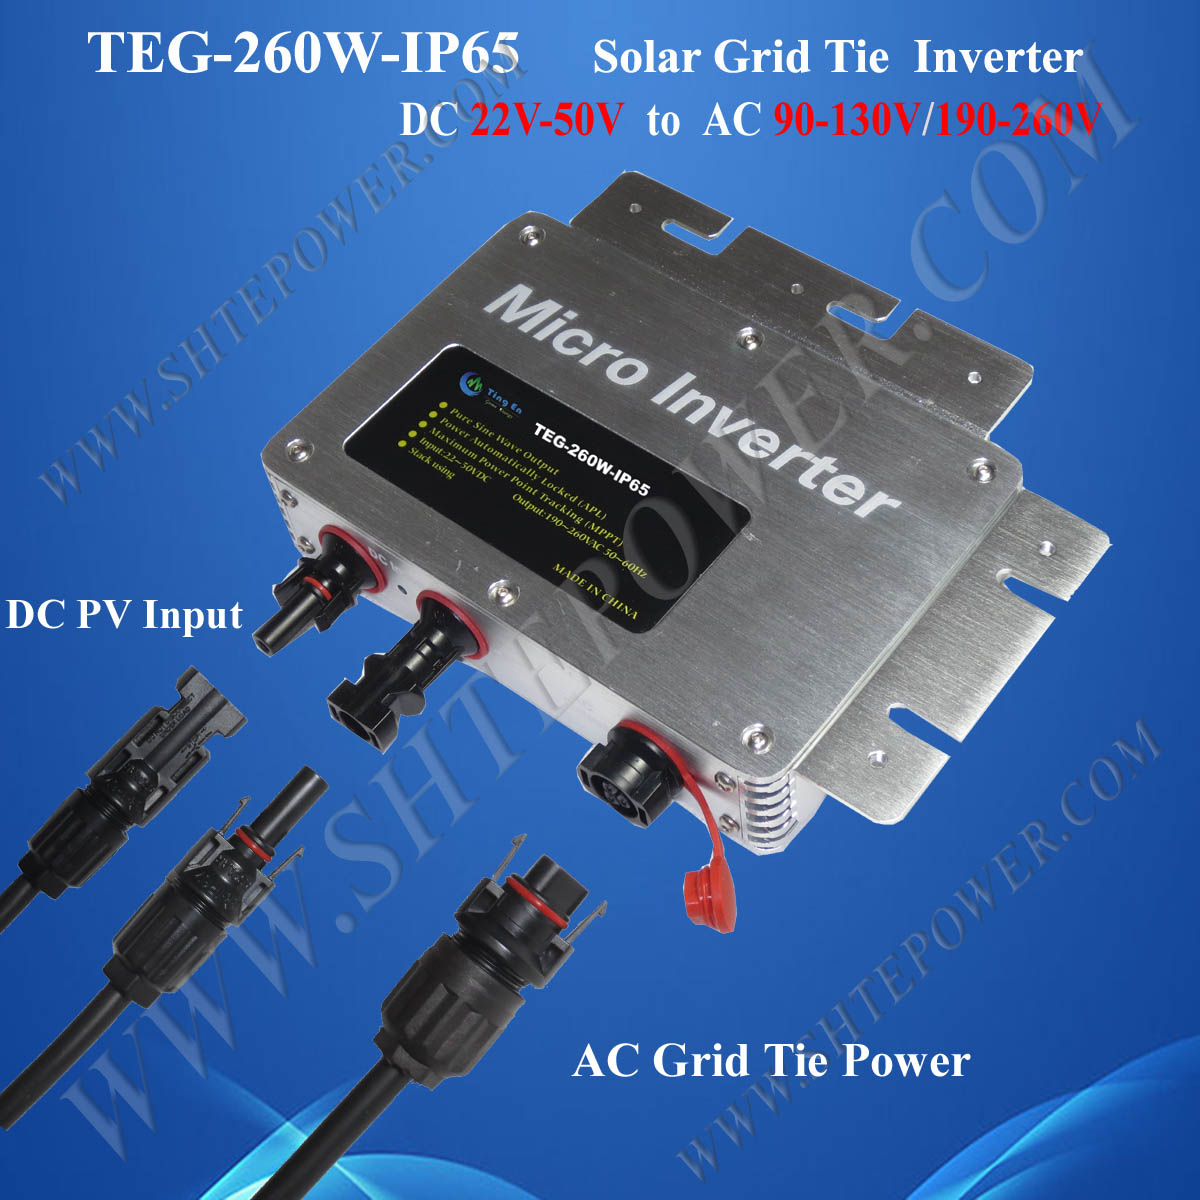 High Quality 260w Grid Tie Micro Inverter For Solar Panels Microinverter Panel System Design Electronic Products Waterproof Ip65 With Monitoring Function Dc 22v 50v Input